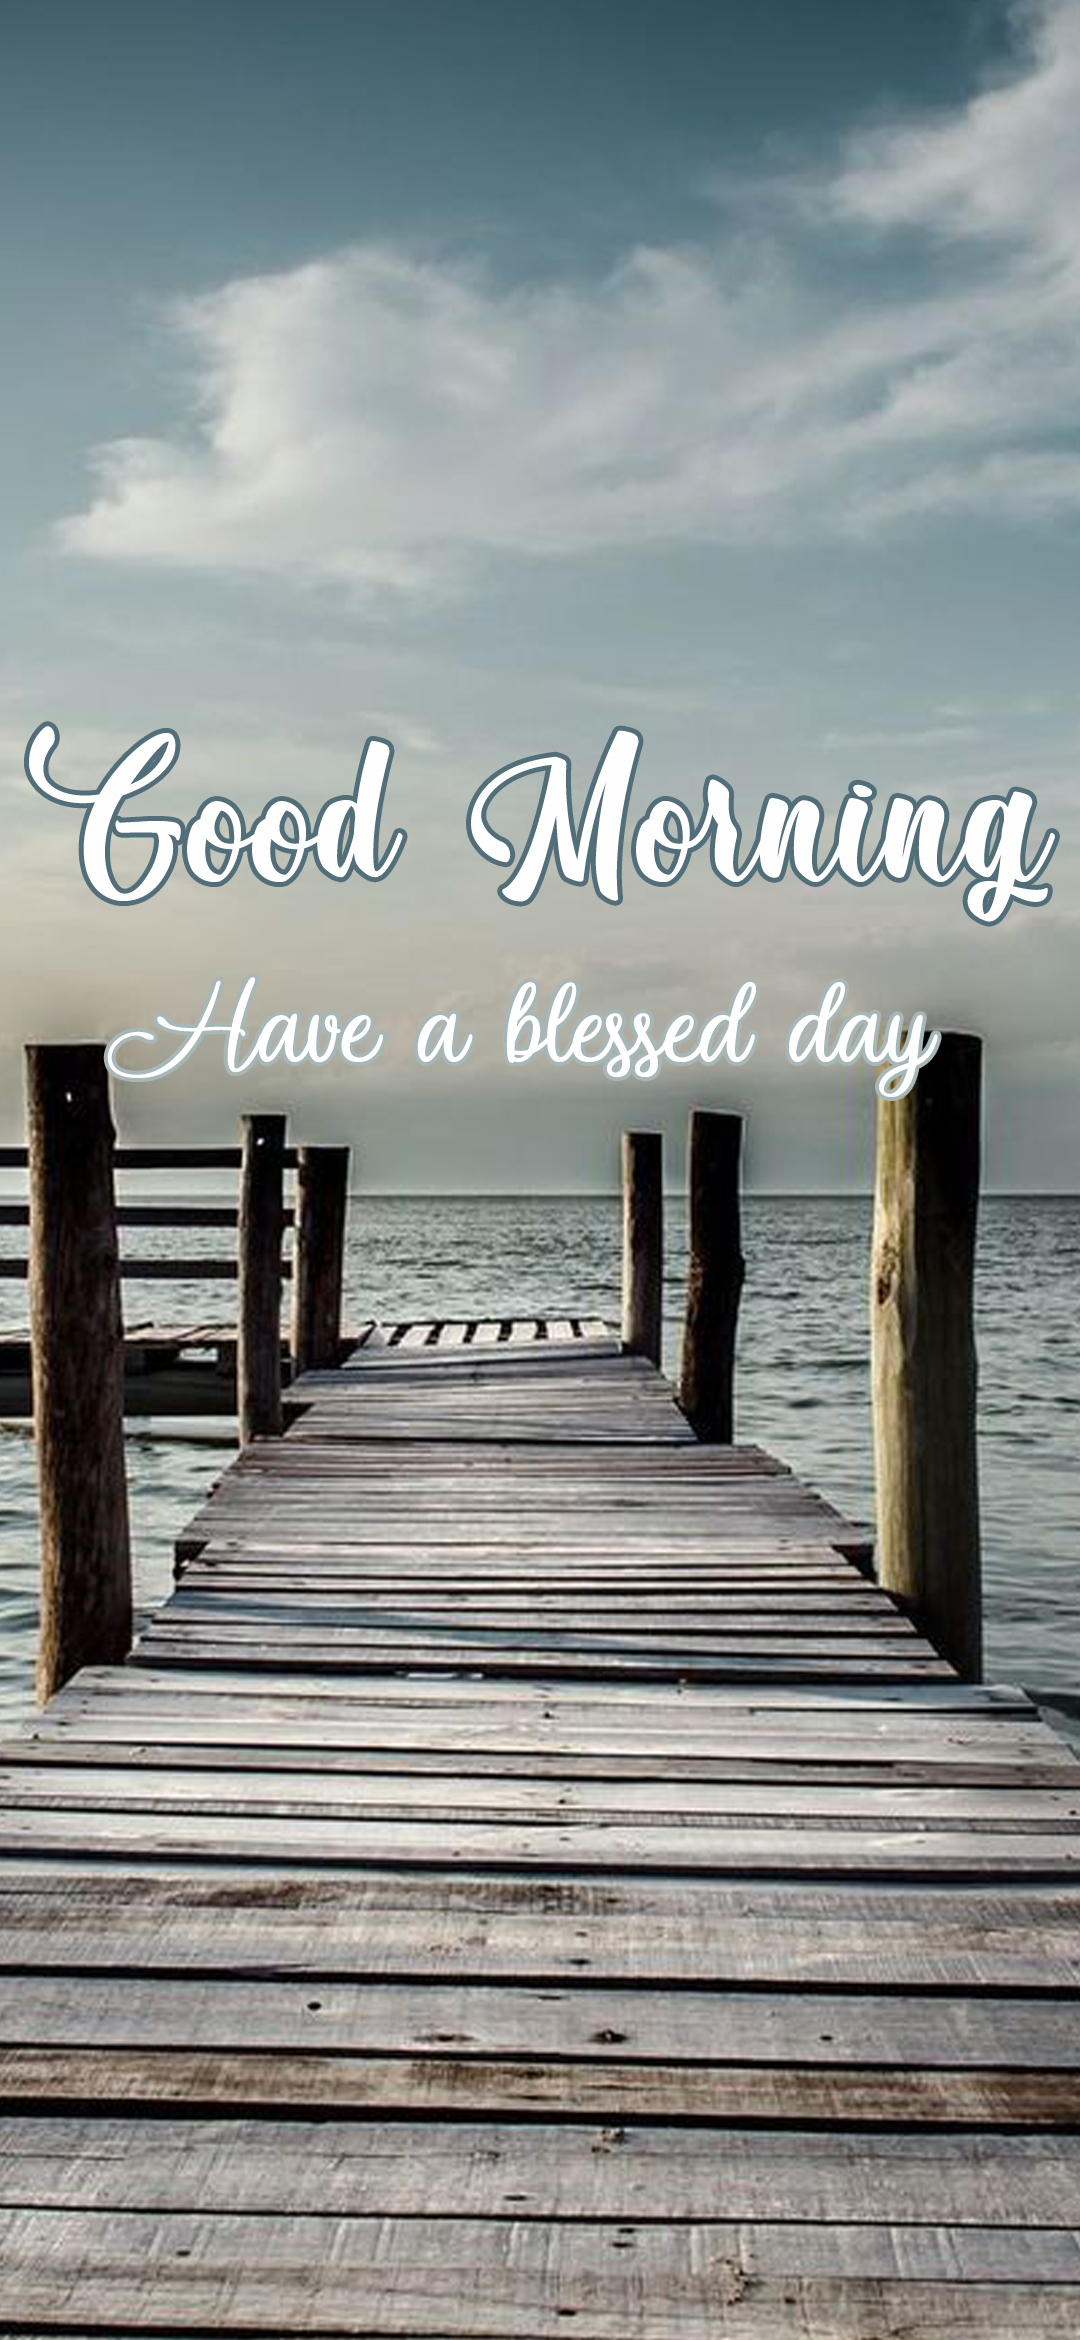 Good Morning Image with Have a Blessed Day Wish